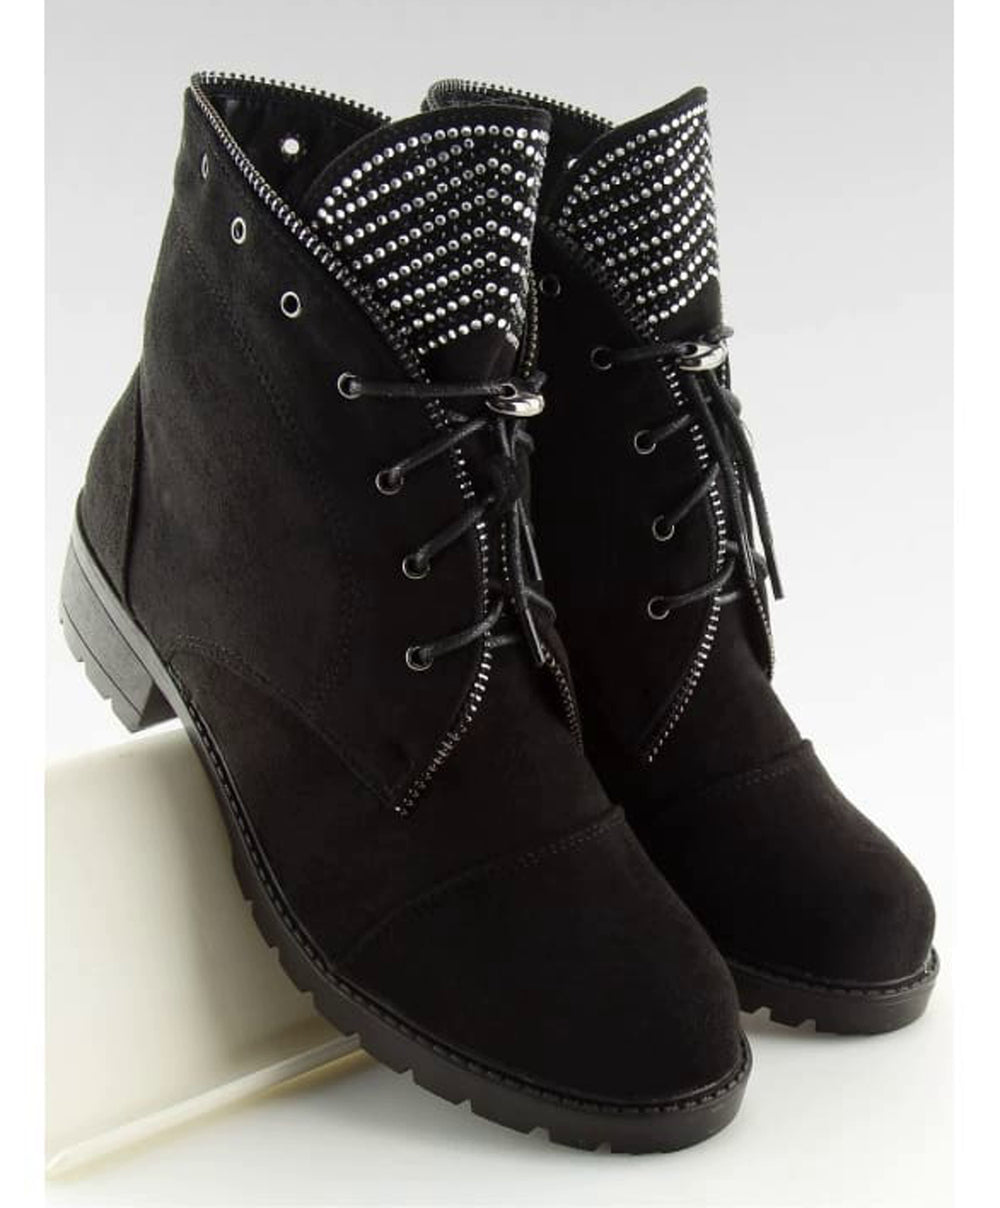 Lace Up Biker Ankle Boots - Footwear Ankle boots, biker boots, black footwear, Booties, boots